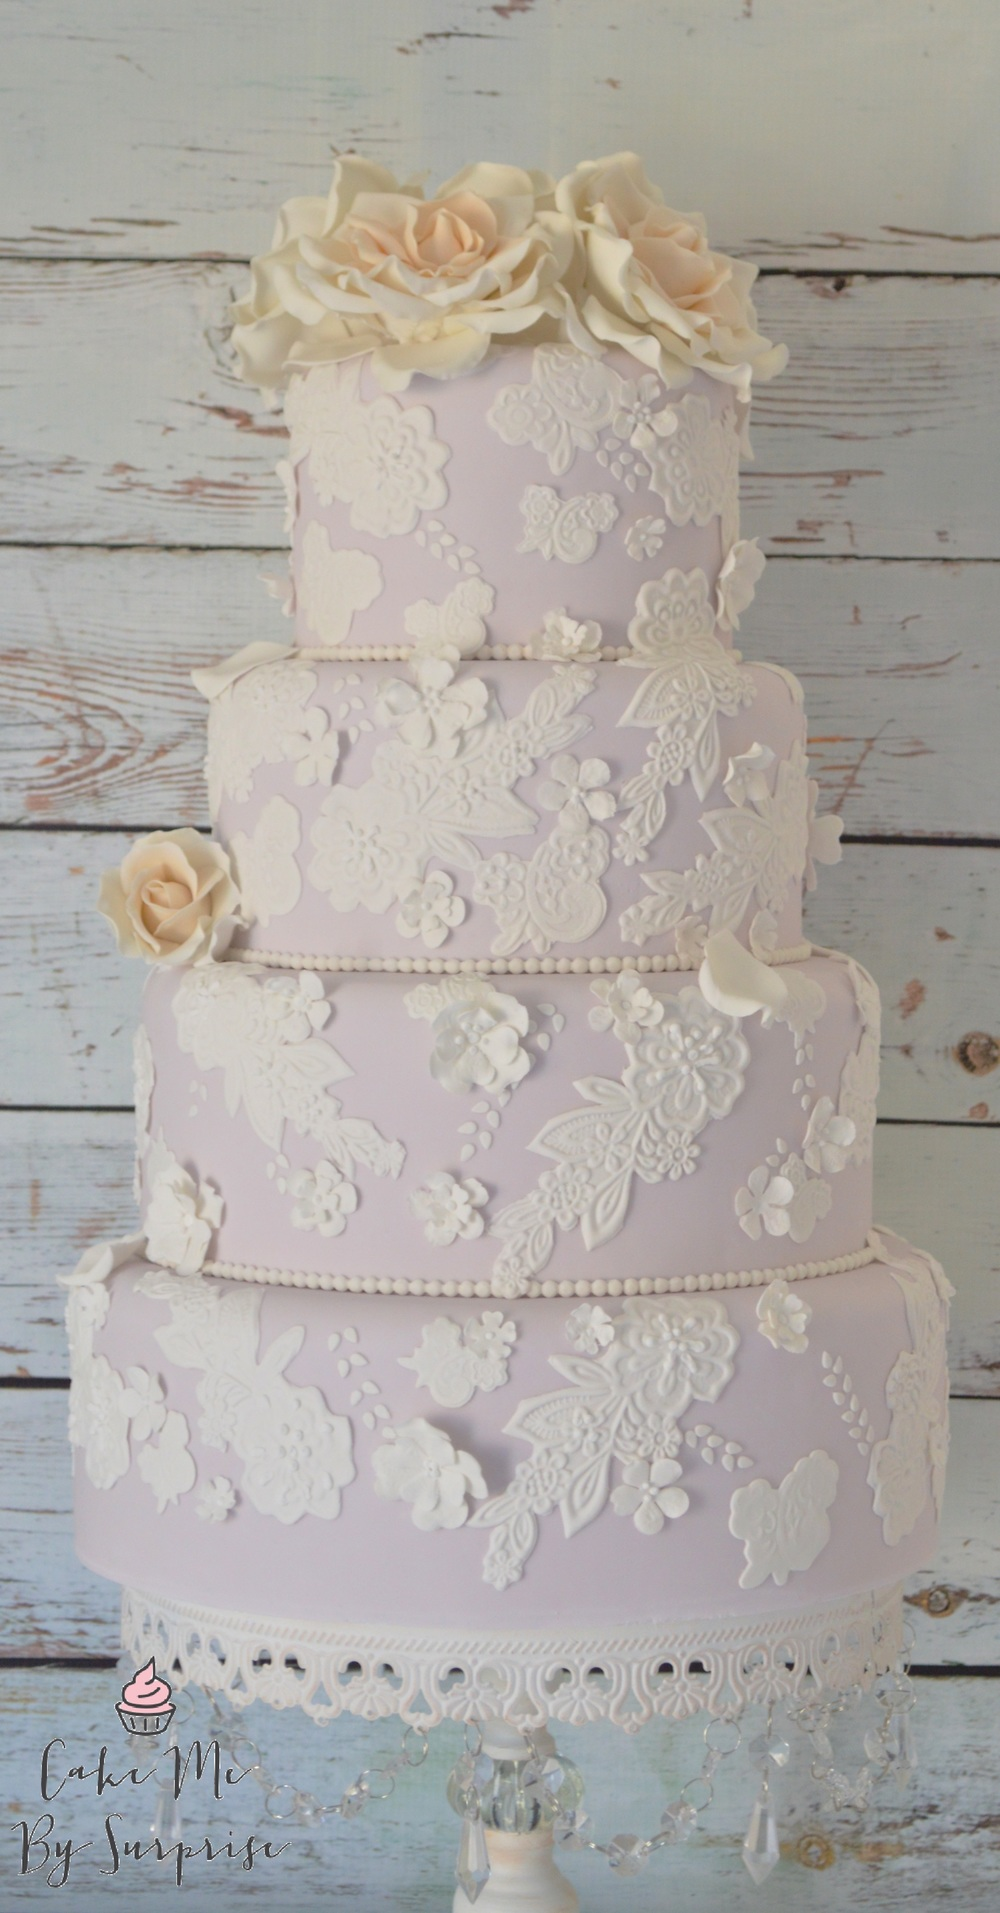 So I finished this design in a lavender colour fondant, and layered it with floral lace patterns, and layered blossoms. Of course, this cake had to be finished with sugar crafted avalanche roses and falling petals.